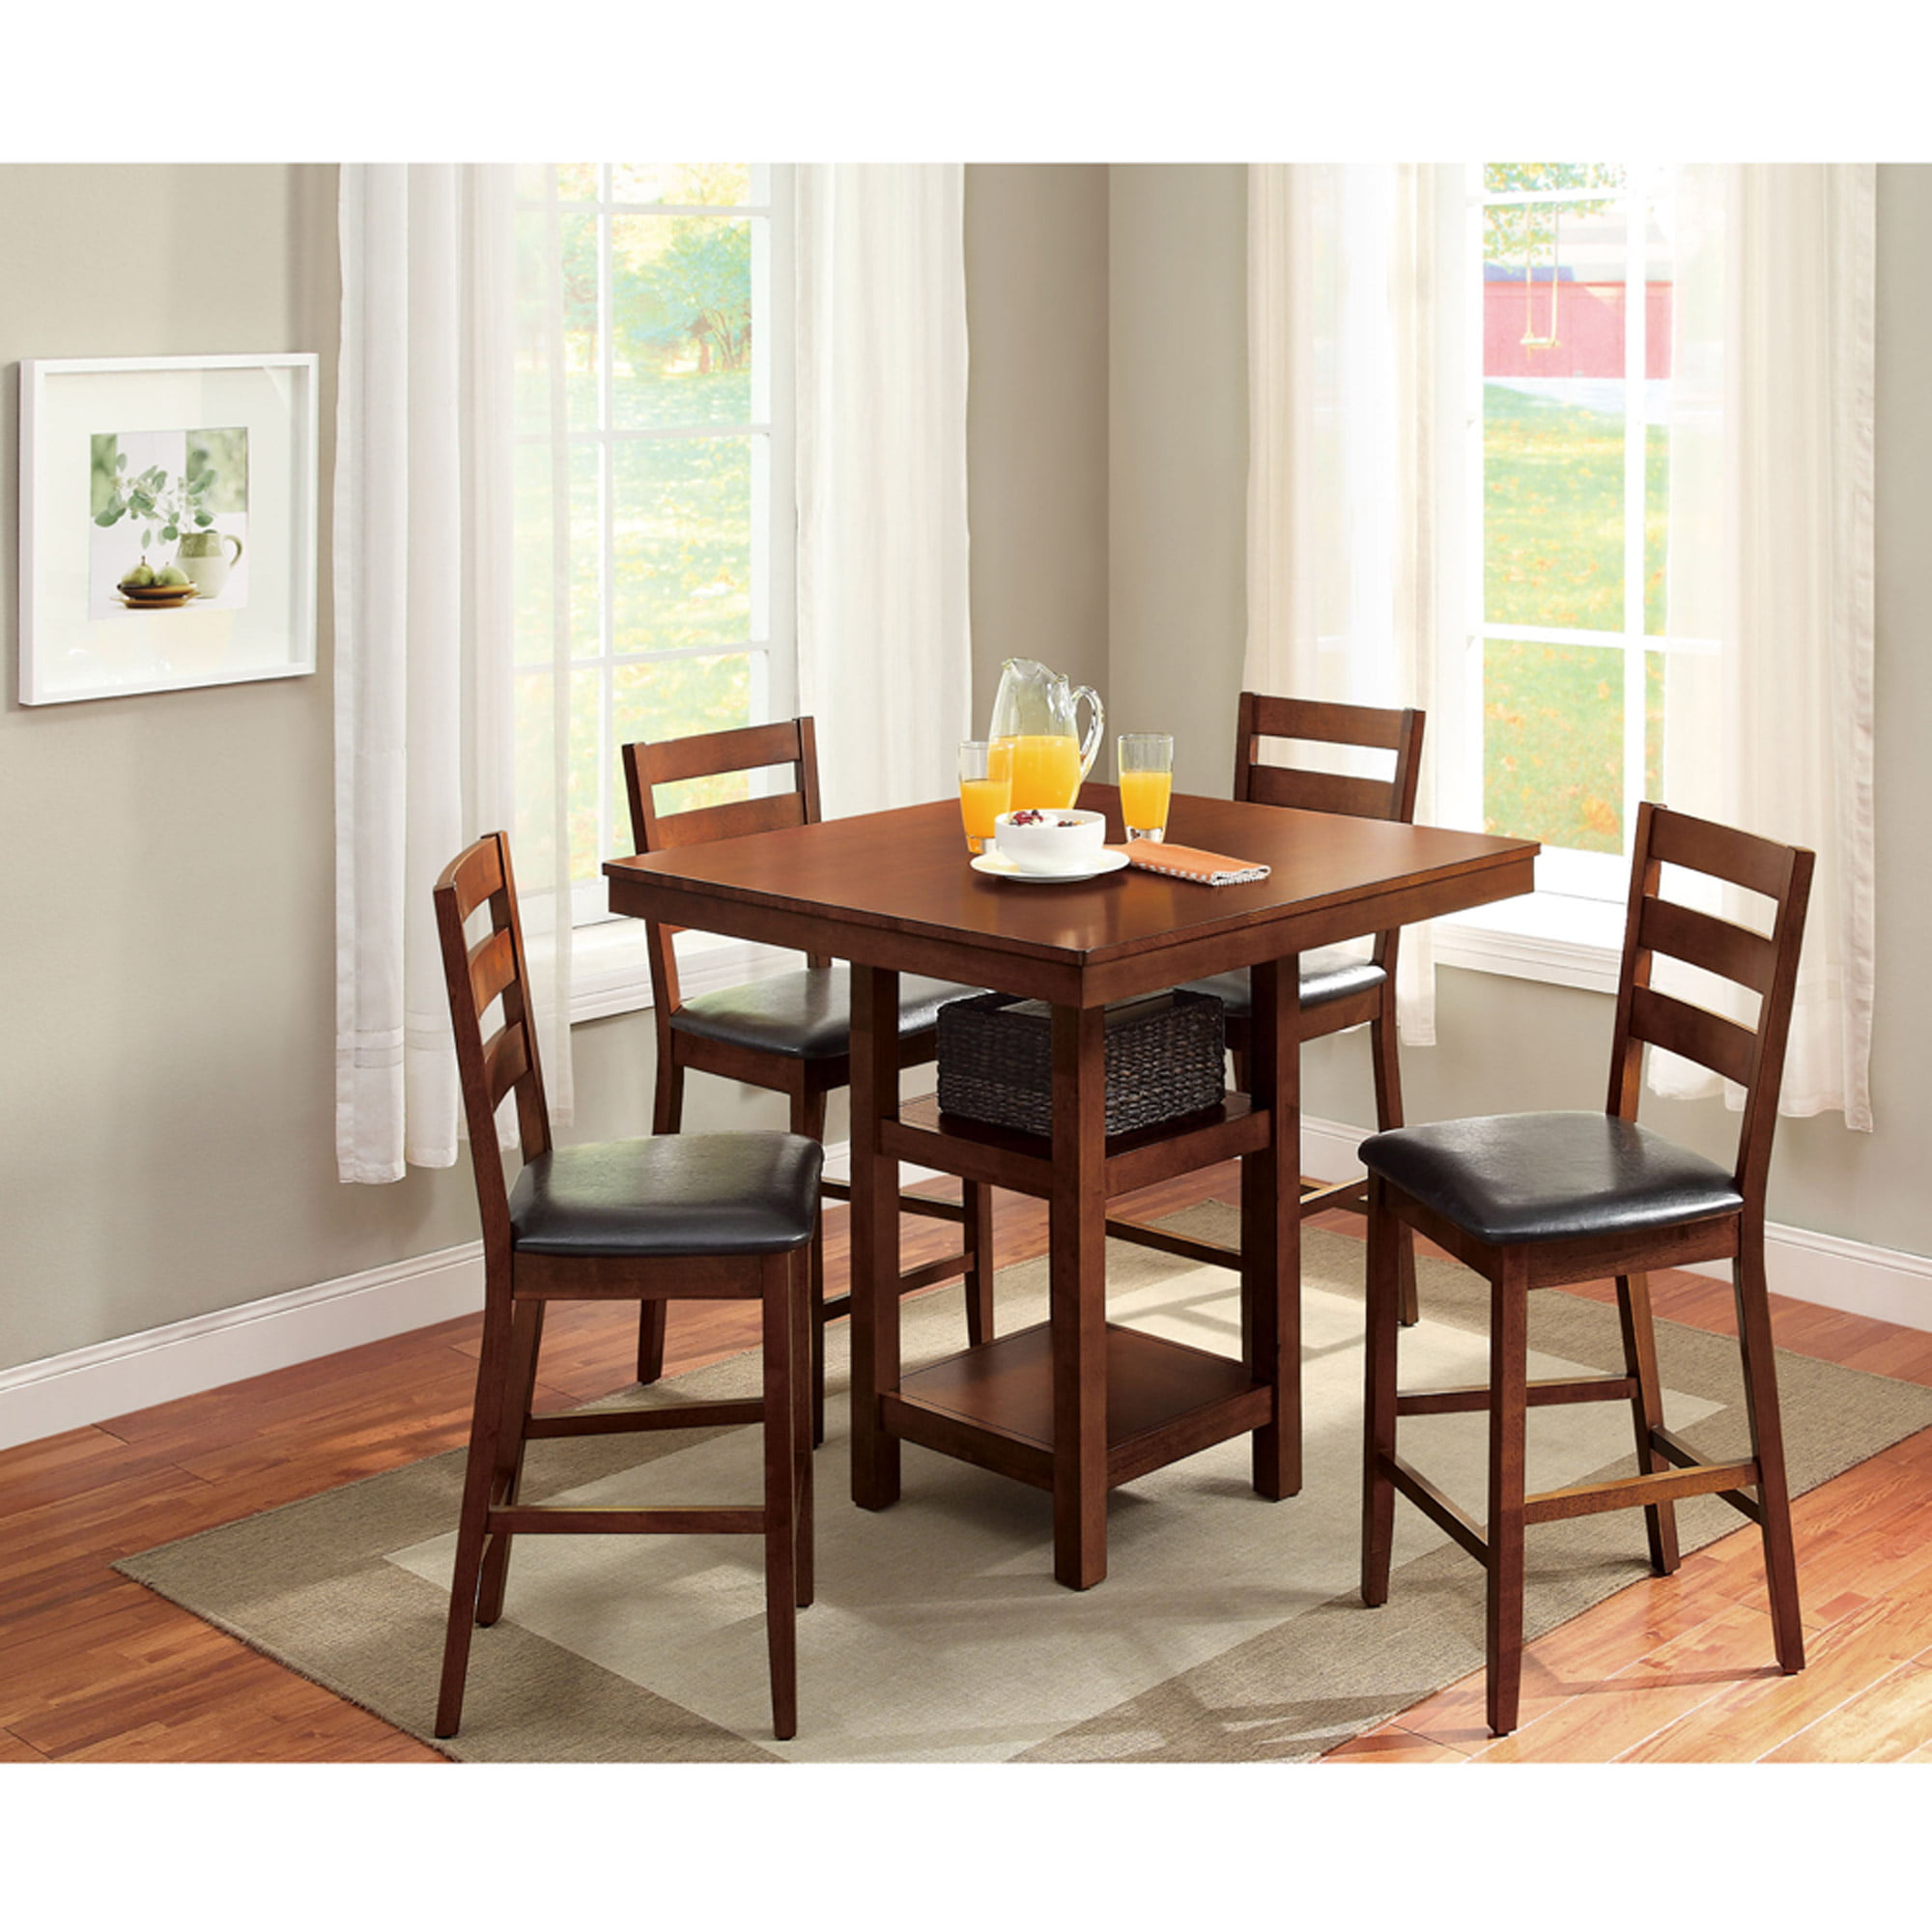 better homes gardens dalton park 5 piece counter height dining set walmartcom - Walmart Kitchen Tables